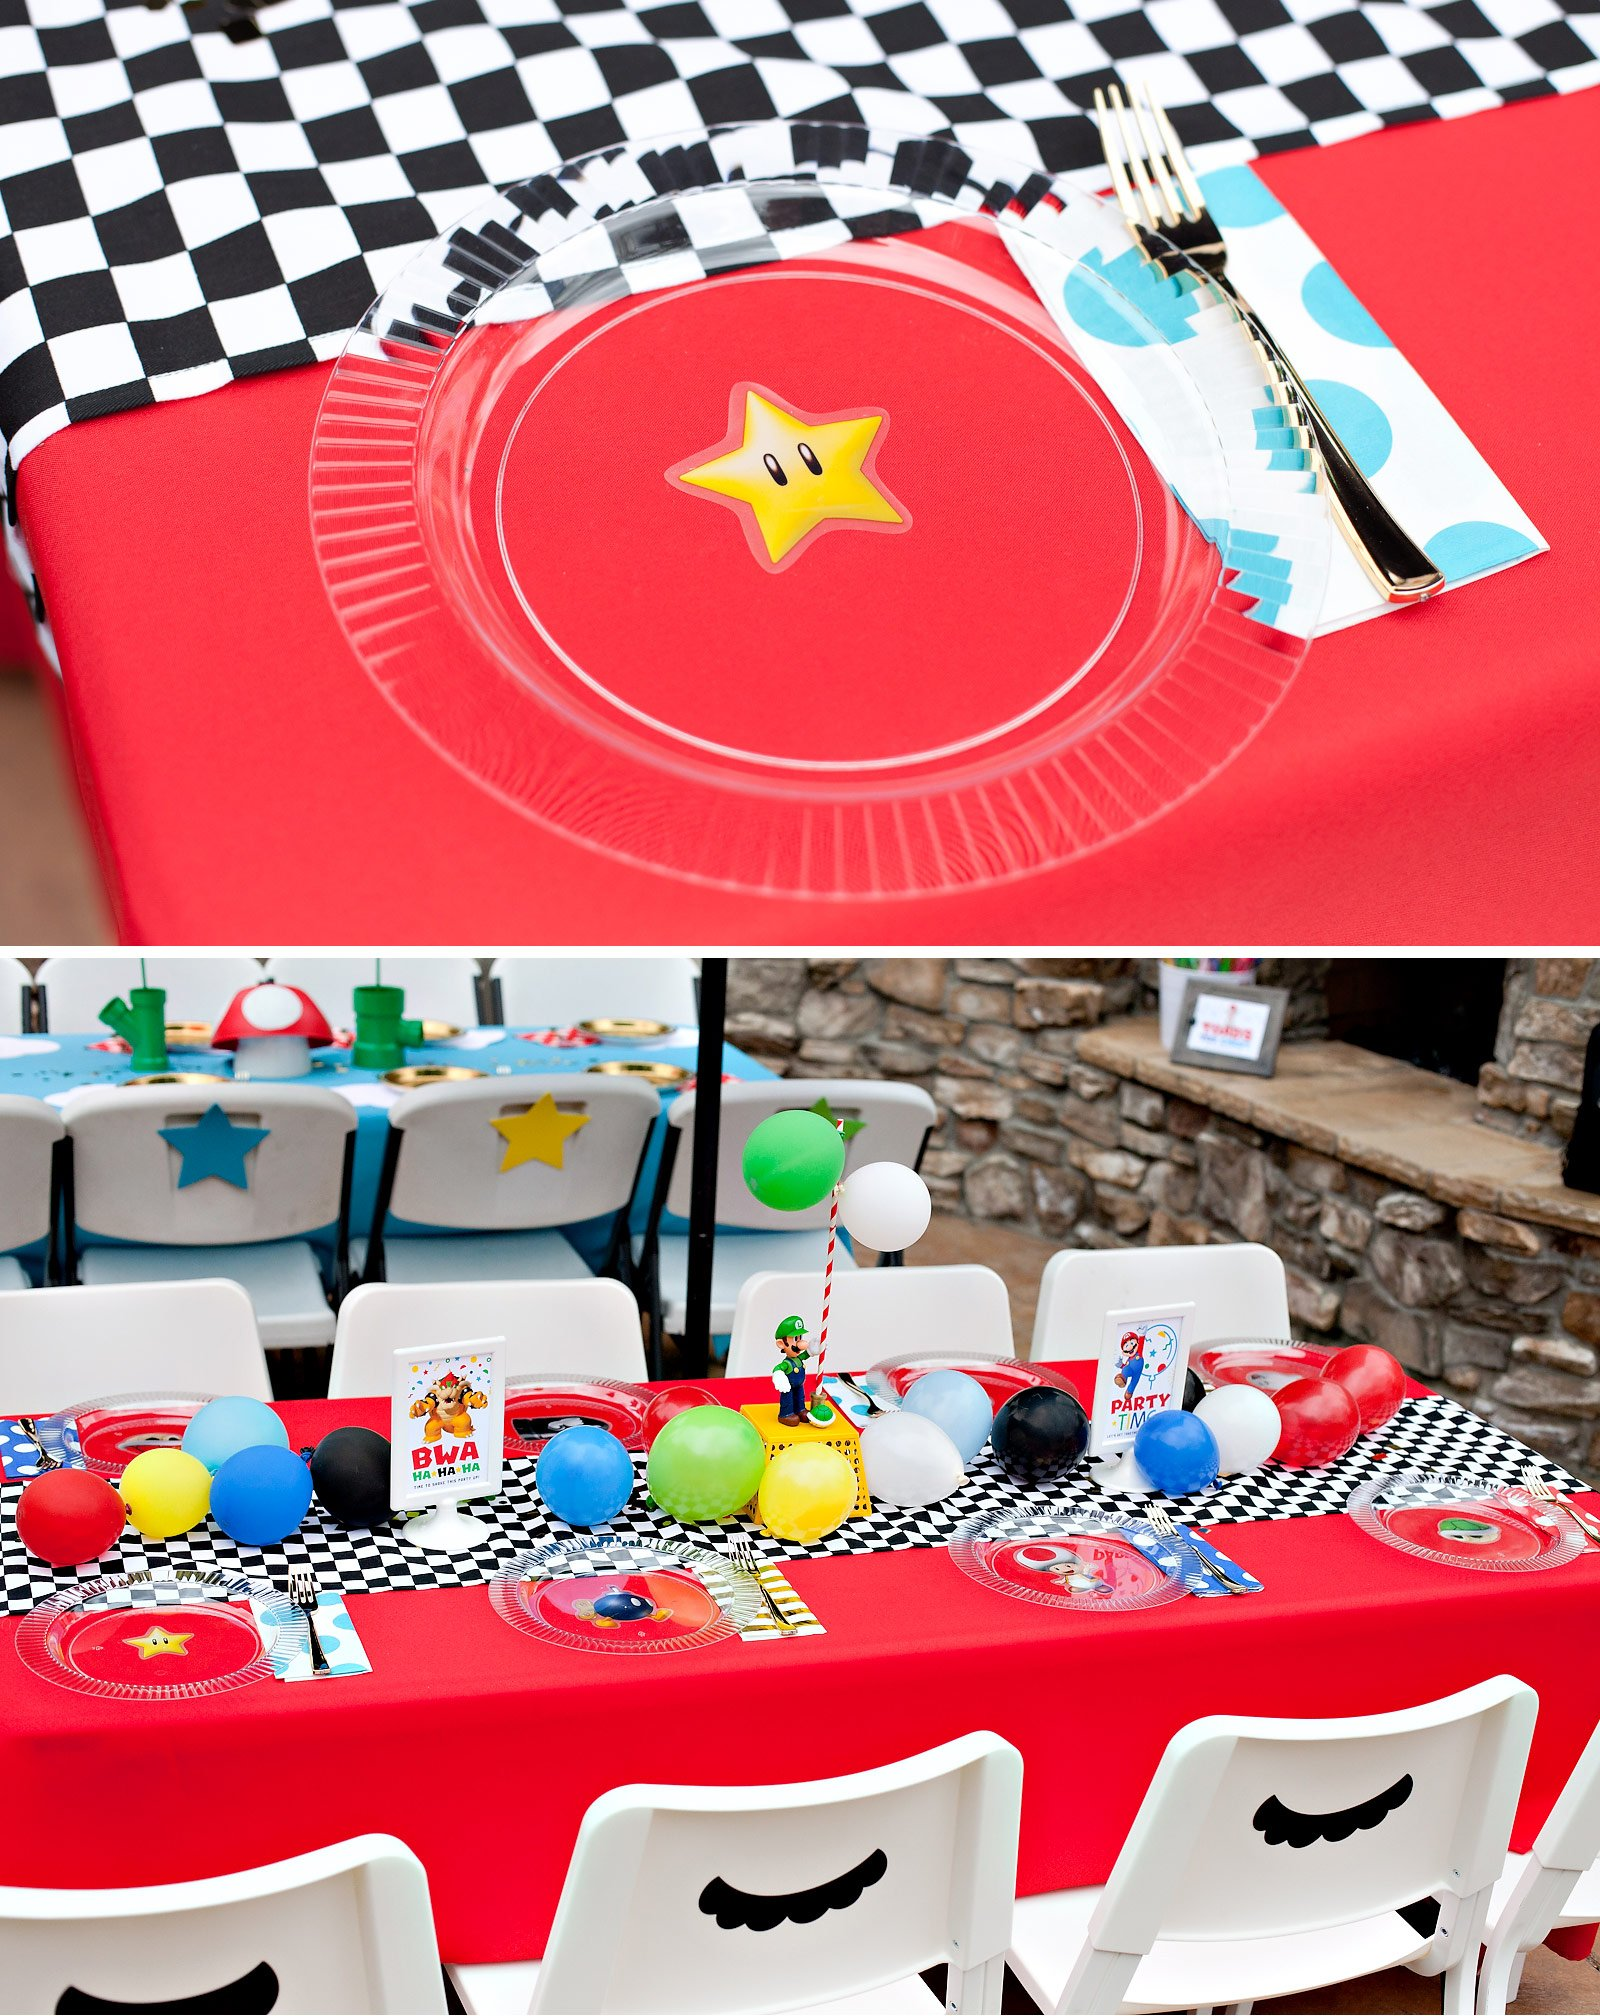 Super Mario Inspired Party Fun 12 Creative Ideas Part 1 Hostess With The Mostess